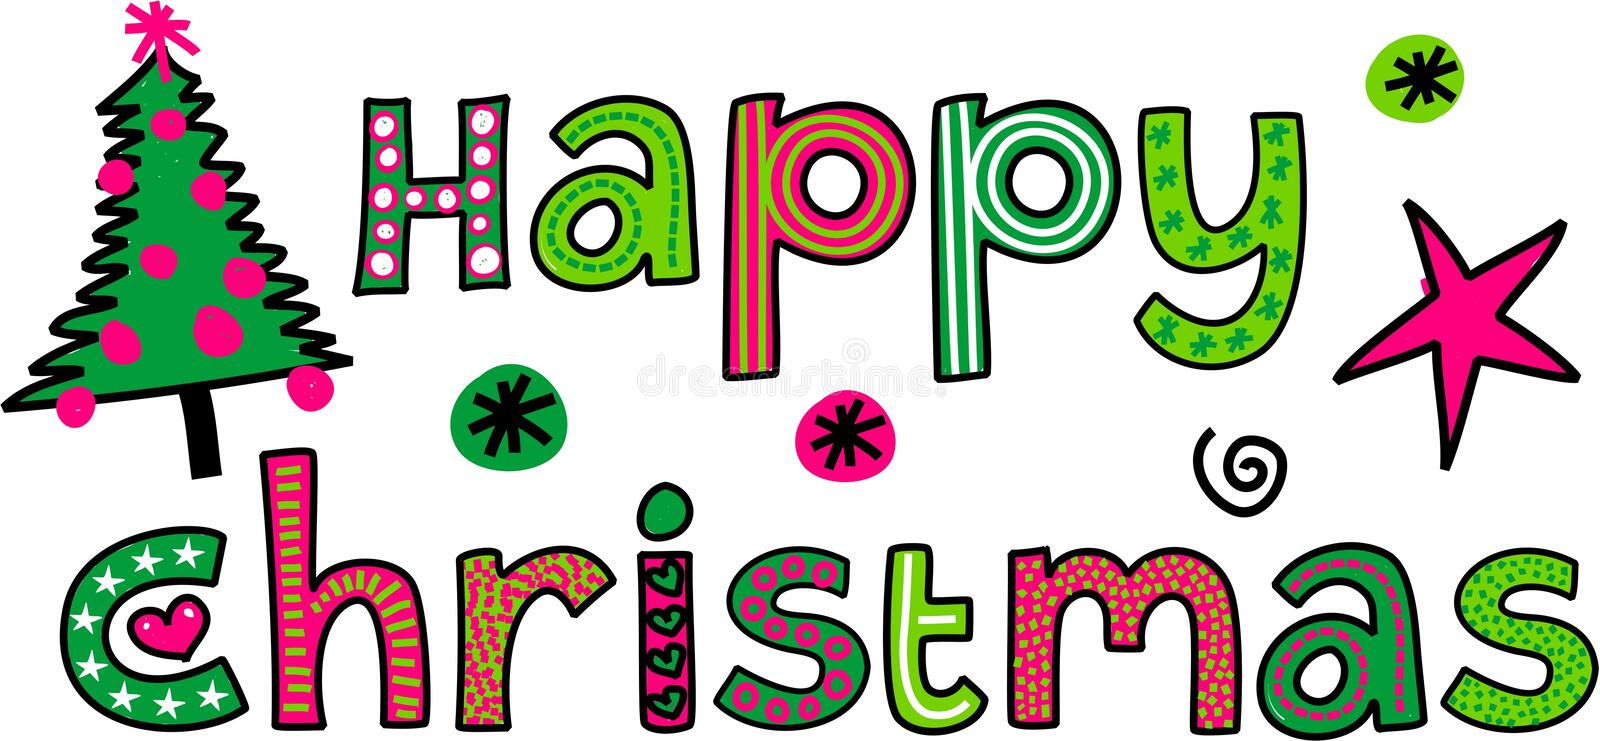 Happy Christmas Text. Hand drawn cartoon whimsical text doodle that reads HAPPY CHRISTMAS stock illustration